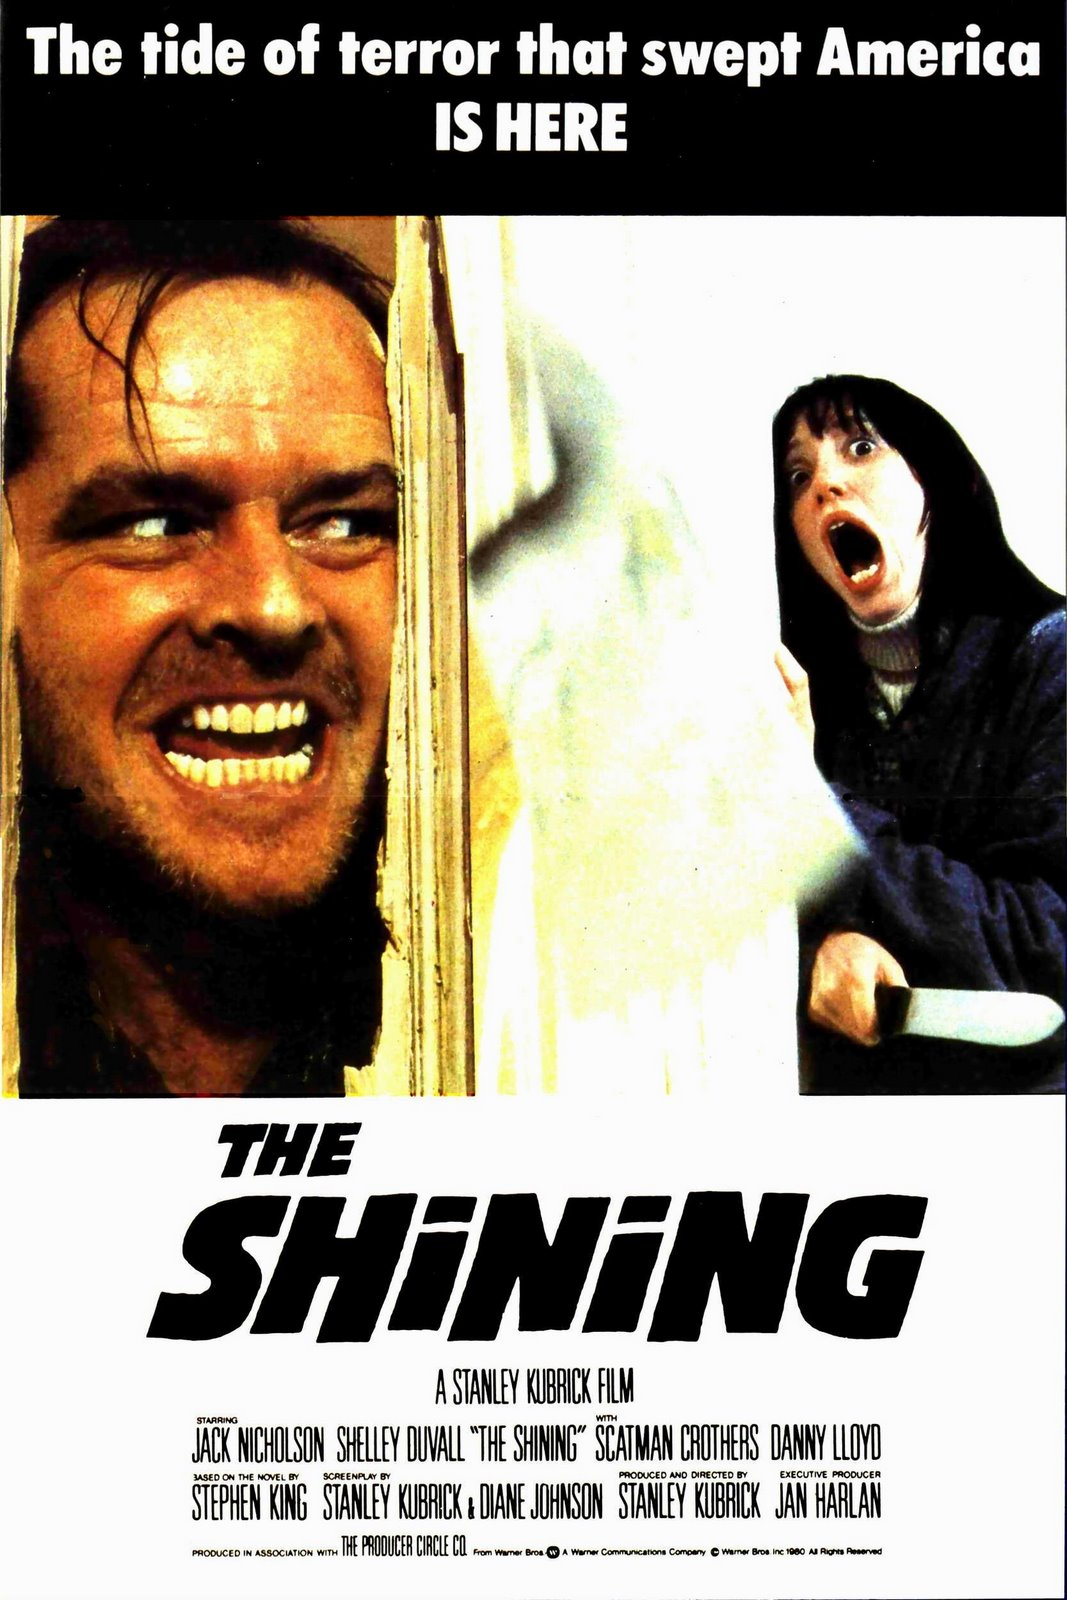 the shining poster - Interview - Rodney Browning Cravens of Dishwalla